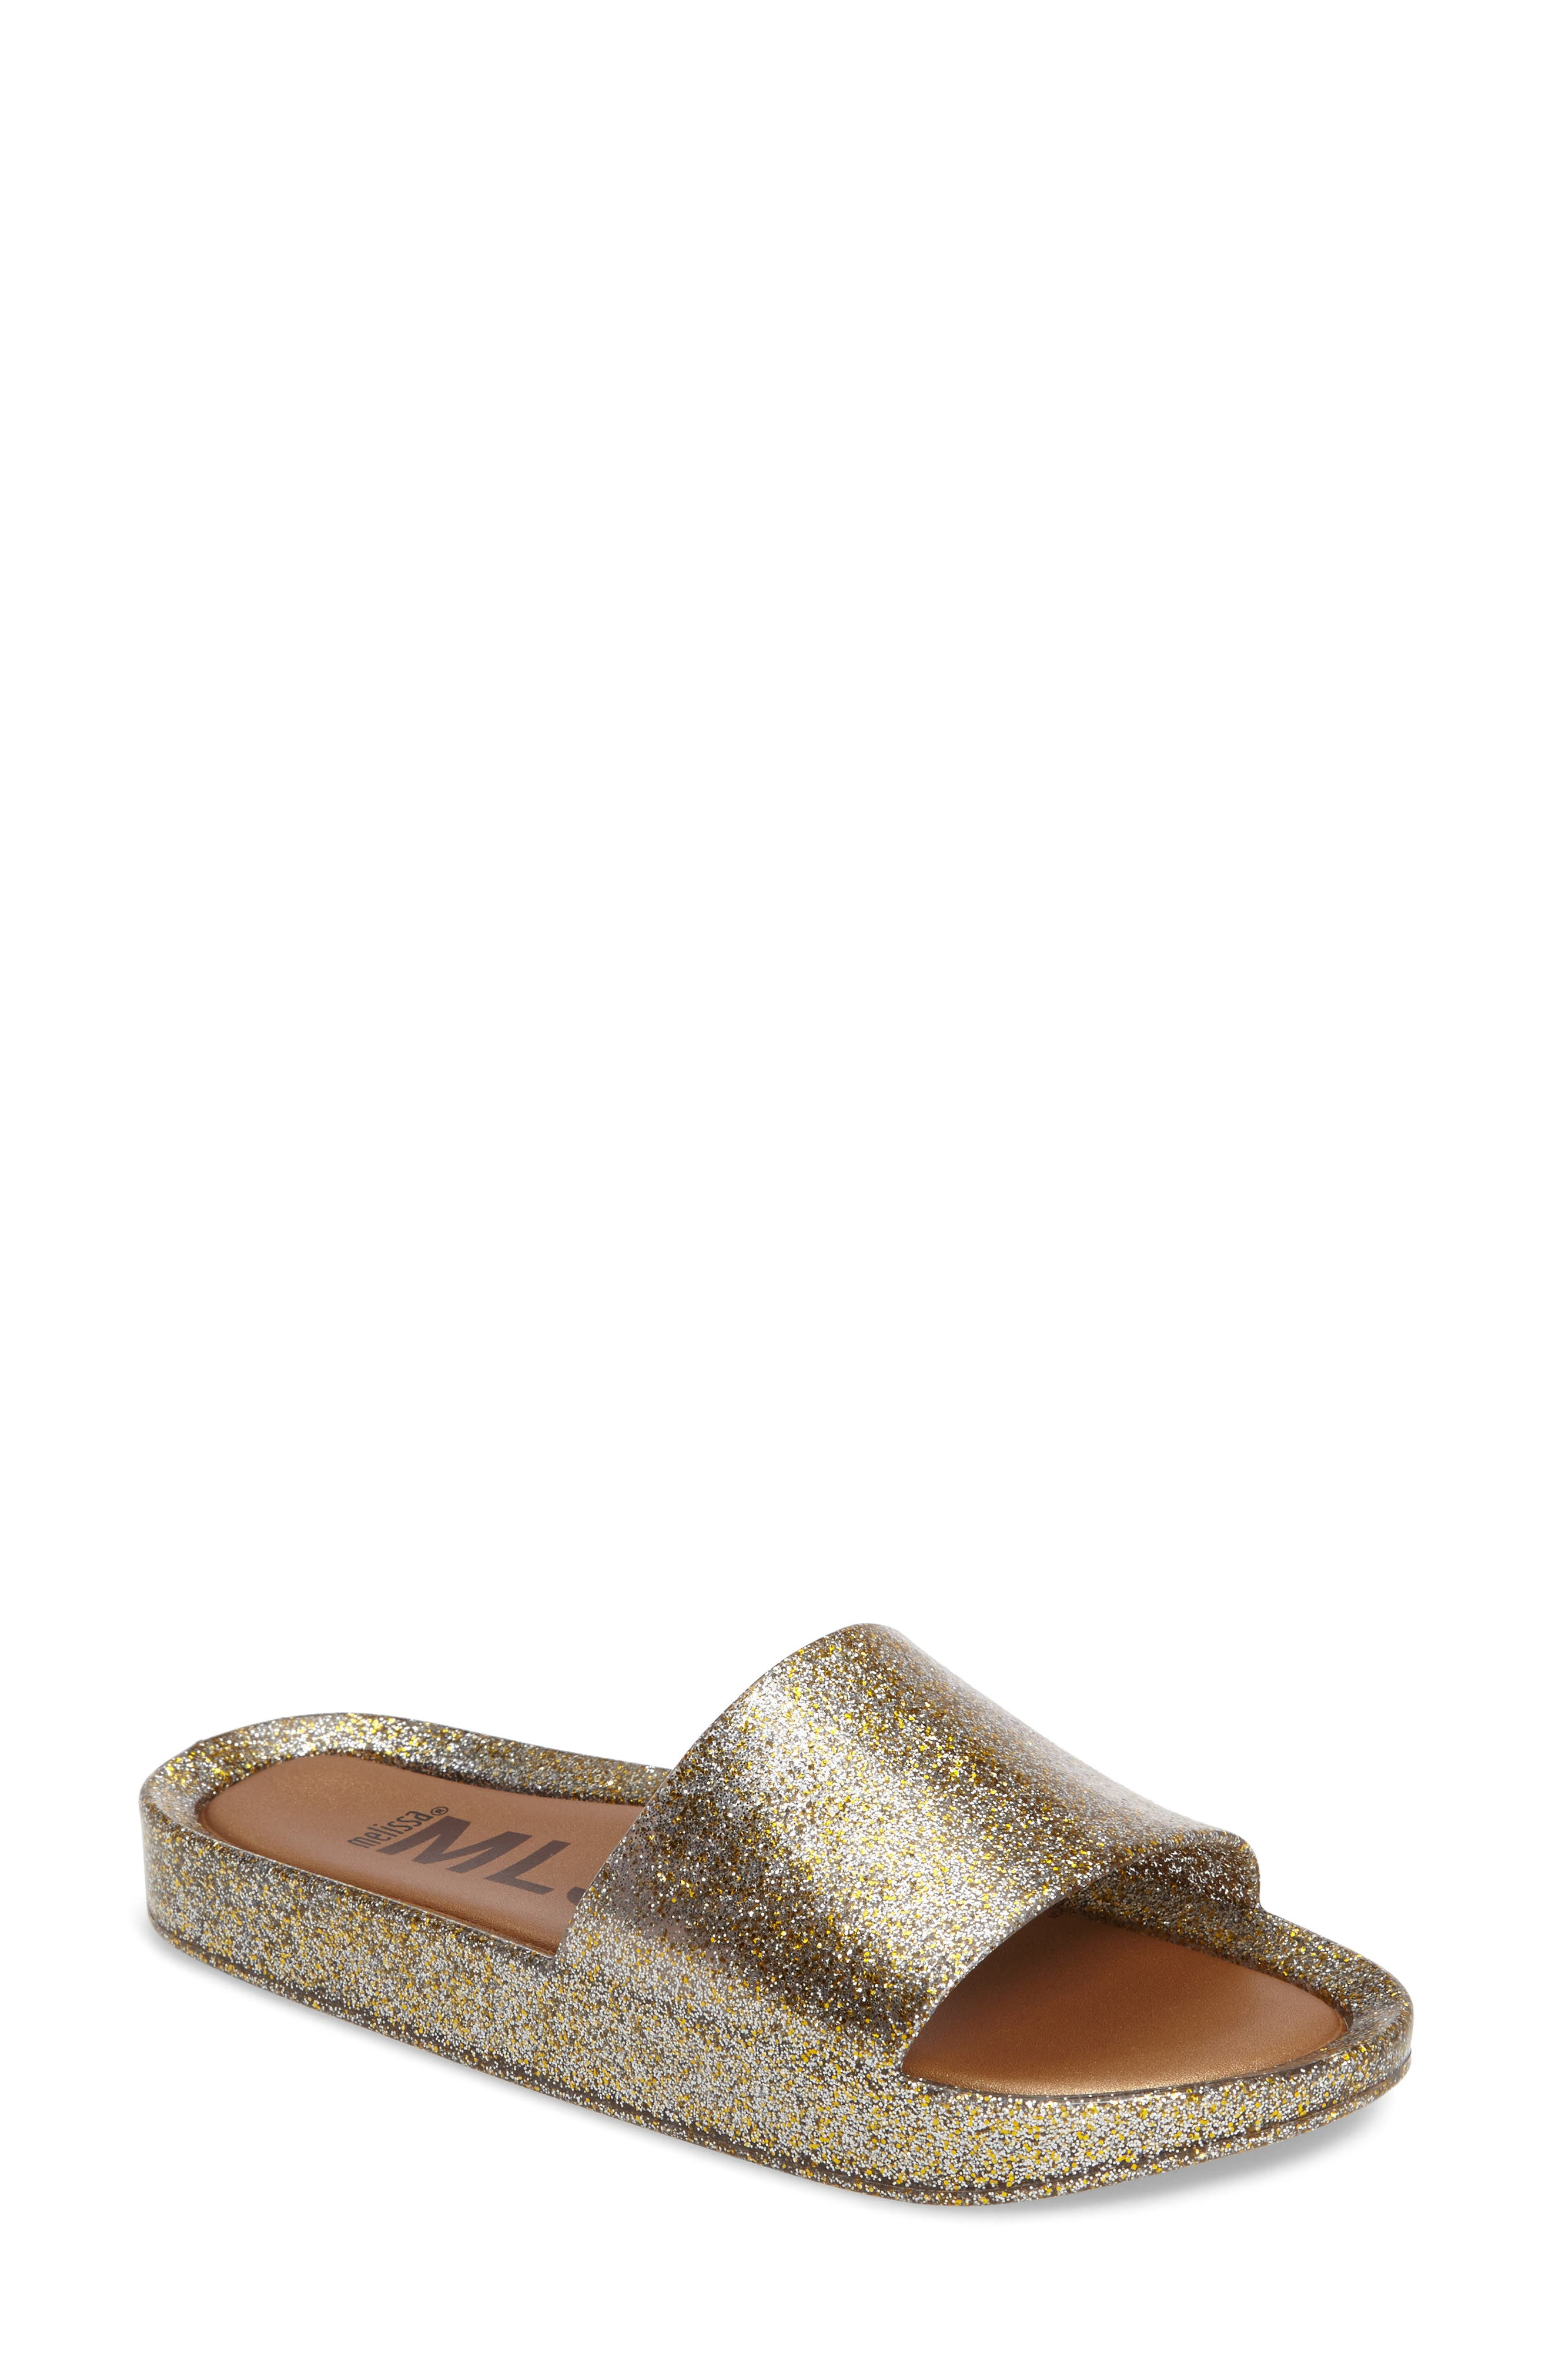 Image of Melissa Beach Slide Sandal